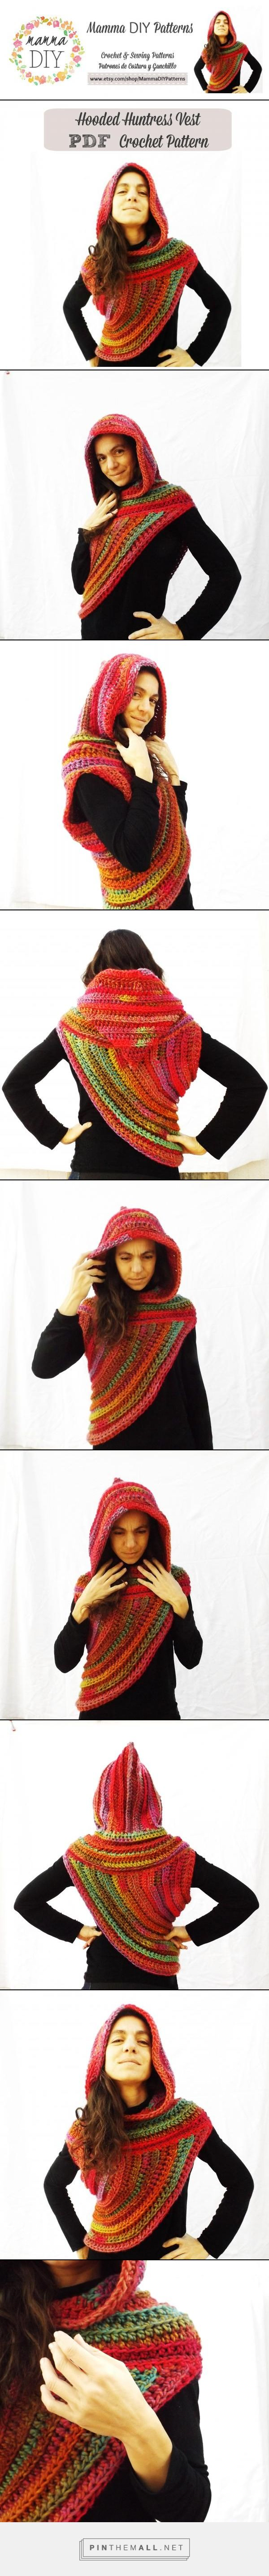 """Find Mamma DIY Patterns on Etsy! Great Phototutorial Crochet Pattern of this Hooded Huntress Vest """"Girl on Fire"""". More than 50 photos and graphics, for intermediate level!  #etsyshop #patterns #crochet #huntress #asymmetrical #vest #hood #katniss #cowl #poncho #hungergames #phototutorial #tutorial #diy #how #pattern #katiayarns #mammadiy #postapocalyptic #chunky #superchunky #bulky #scarf - created via http://pinthemall.net"""